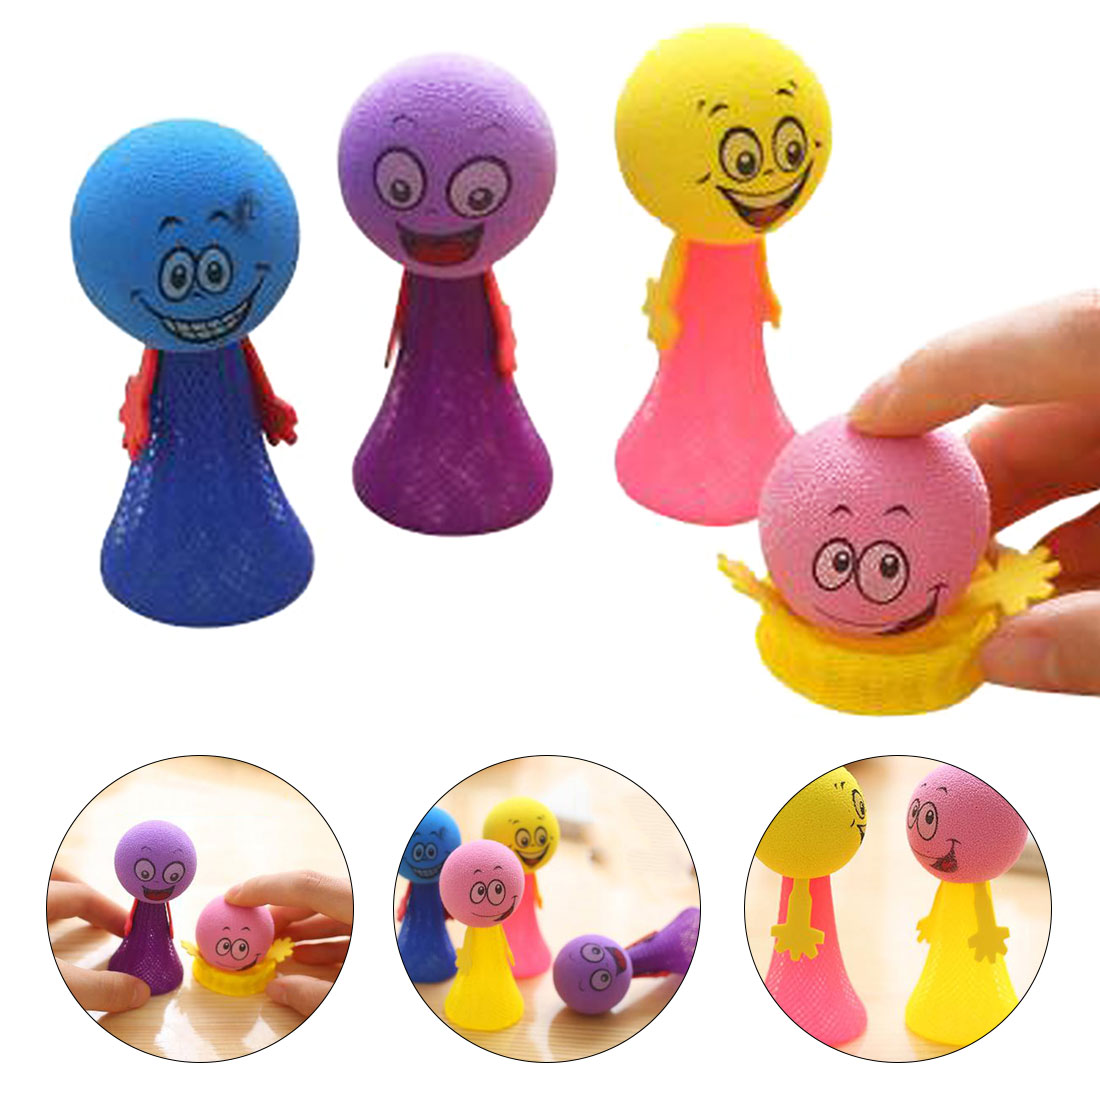 Novelty Bouncing Elf Toys for Children Squeeze Jumping Bounce elf Joke Toys for Kids Party Game Kindergarten Easter Present Car phone